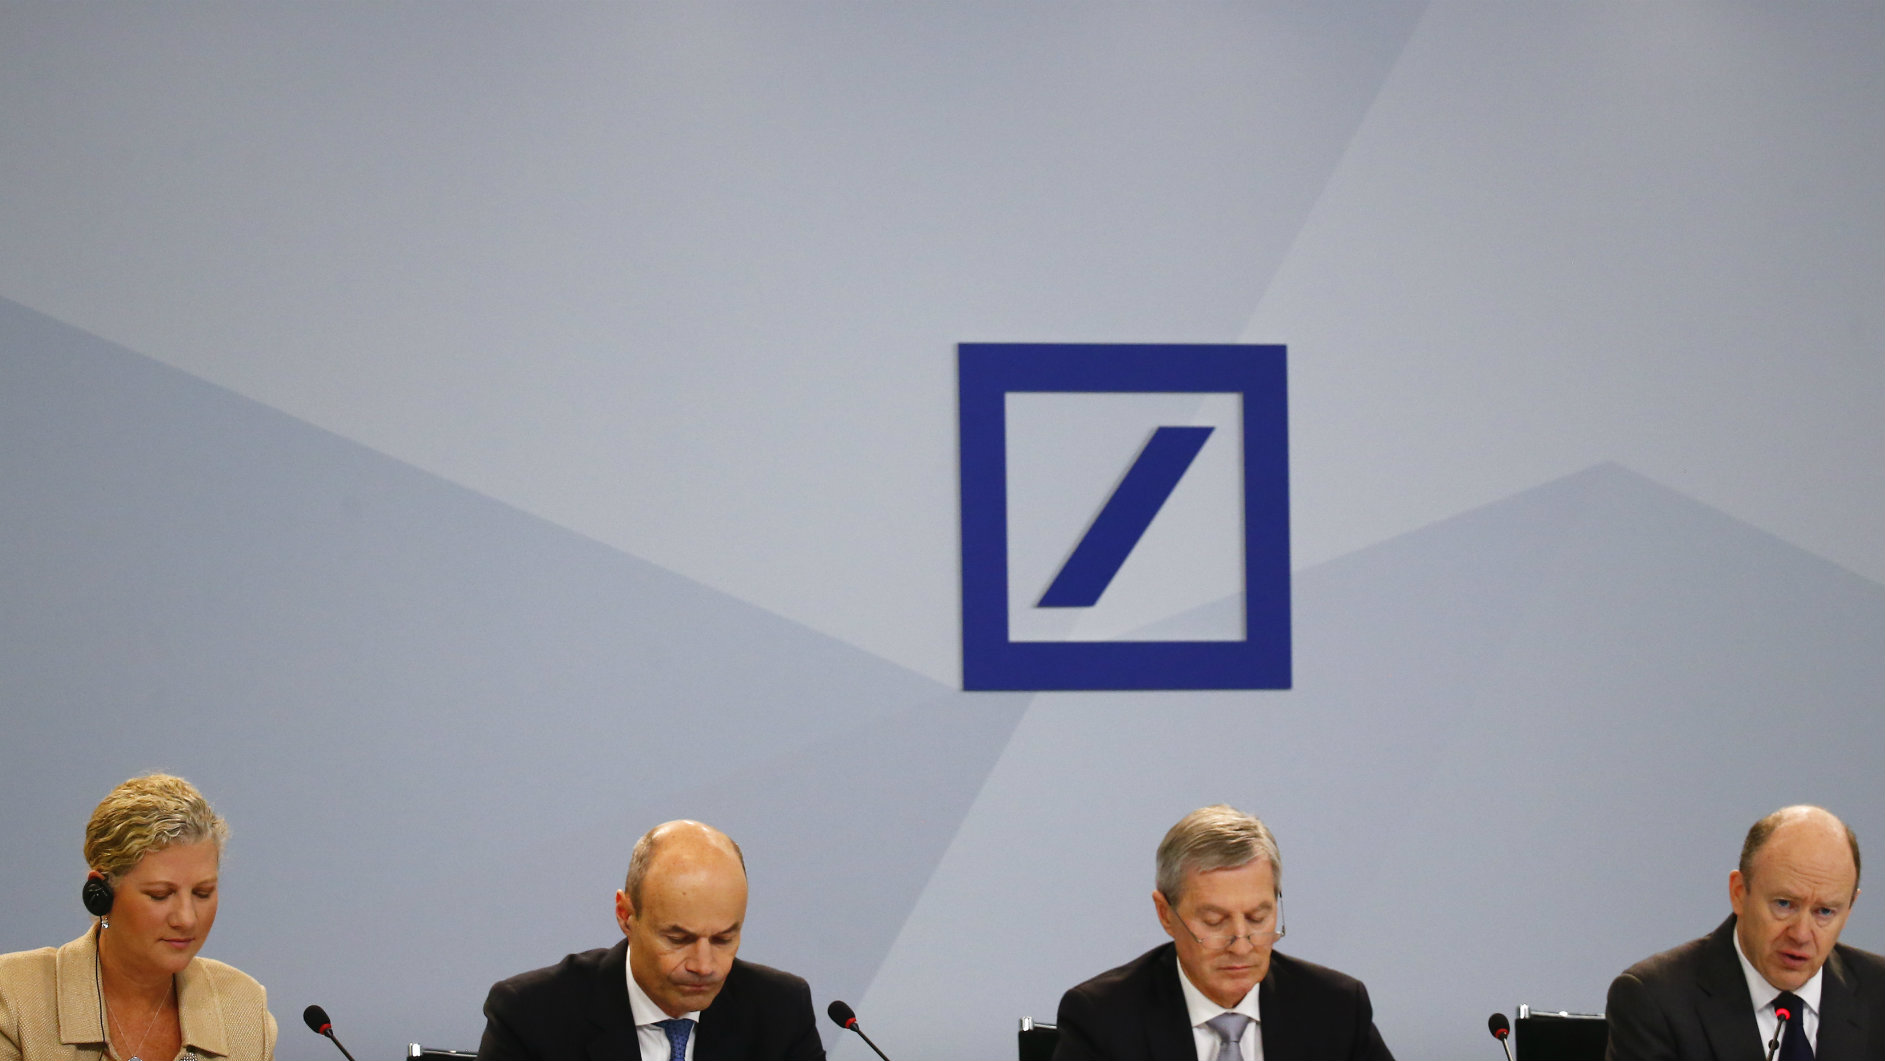 Deutsche Bank COO Kim Hammonds, CFO Marcus Schenck, co-CEO Juergen Fitschen and Chief Executive John Cryan (L-R) attend a news conference in Frankfurt, Germany, January 28, 2016. Deutsche Bank Chief Executive John Cryan urged investors to bear with him as he expects the overhaul of Germany's biggest lender to peak this year, following a record loss in 2015.